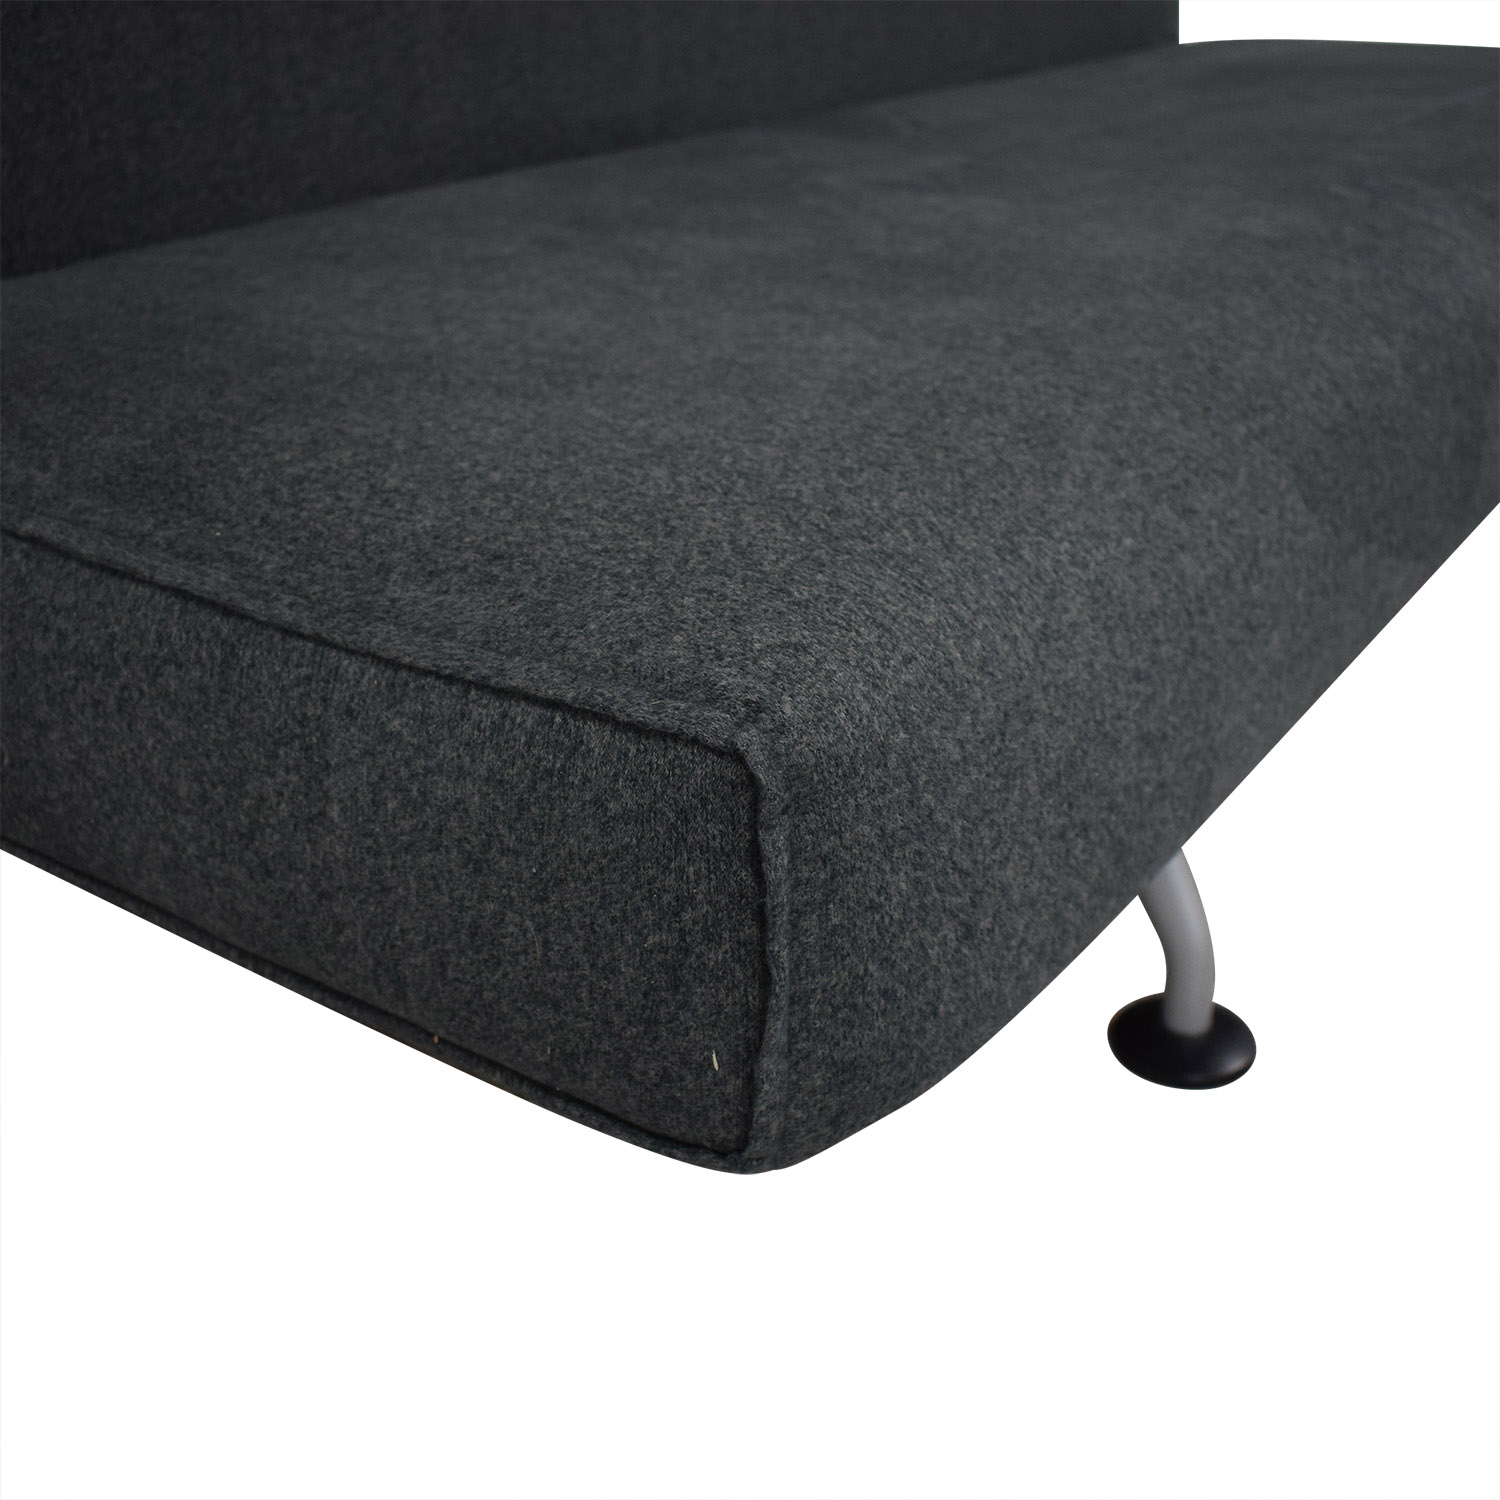 buy Design Within Reach Tacchini Sliding Bed Sleeper Sofa Design Within Reach Sofas